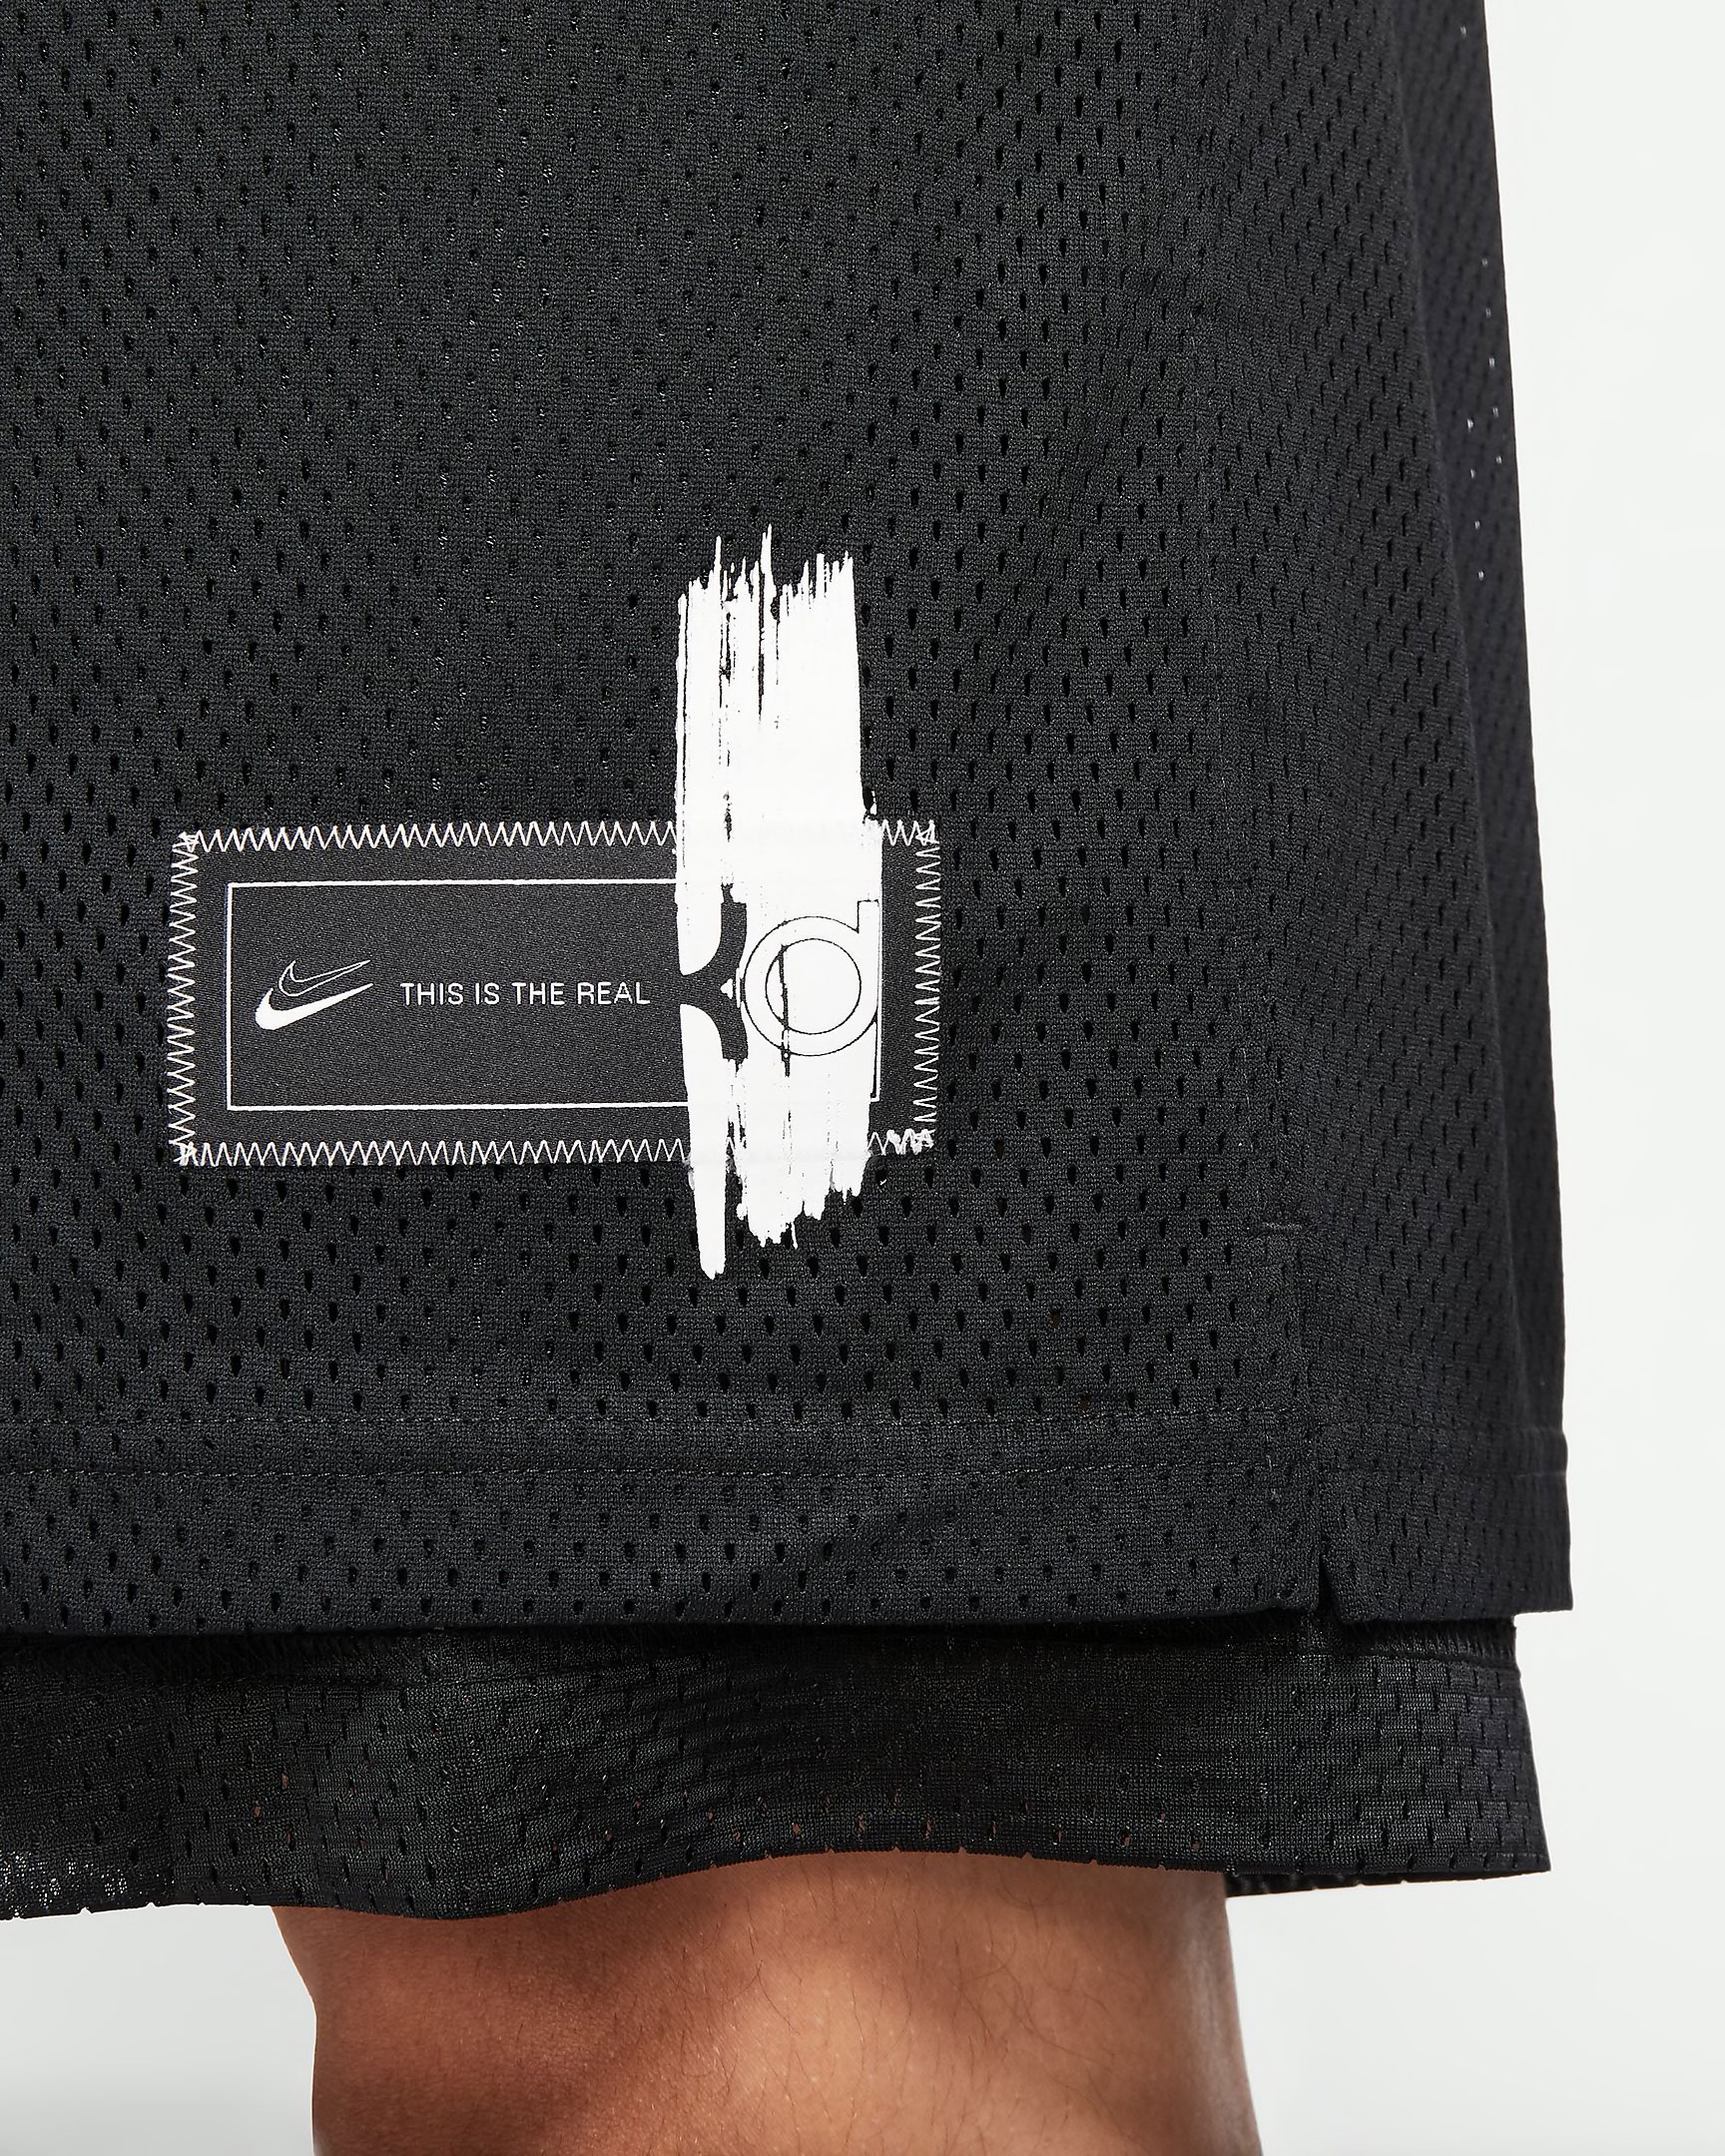 nike-kd-13-black-white-shorts-4